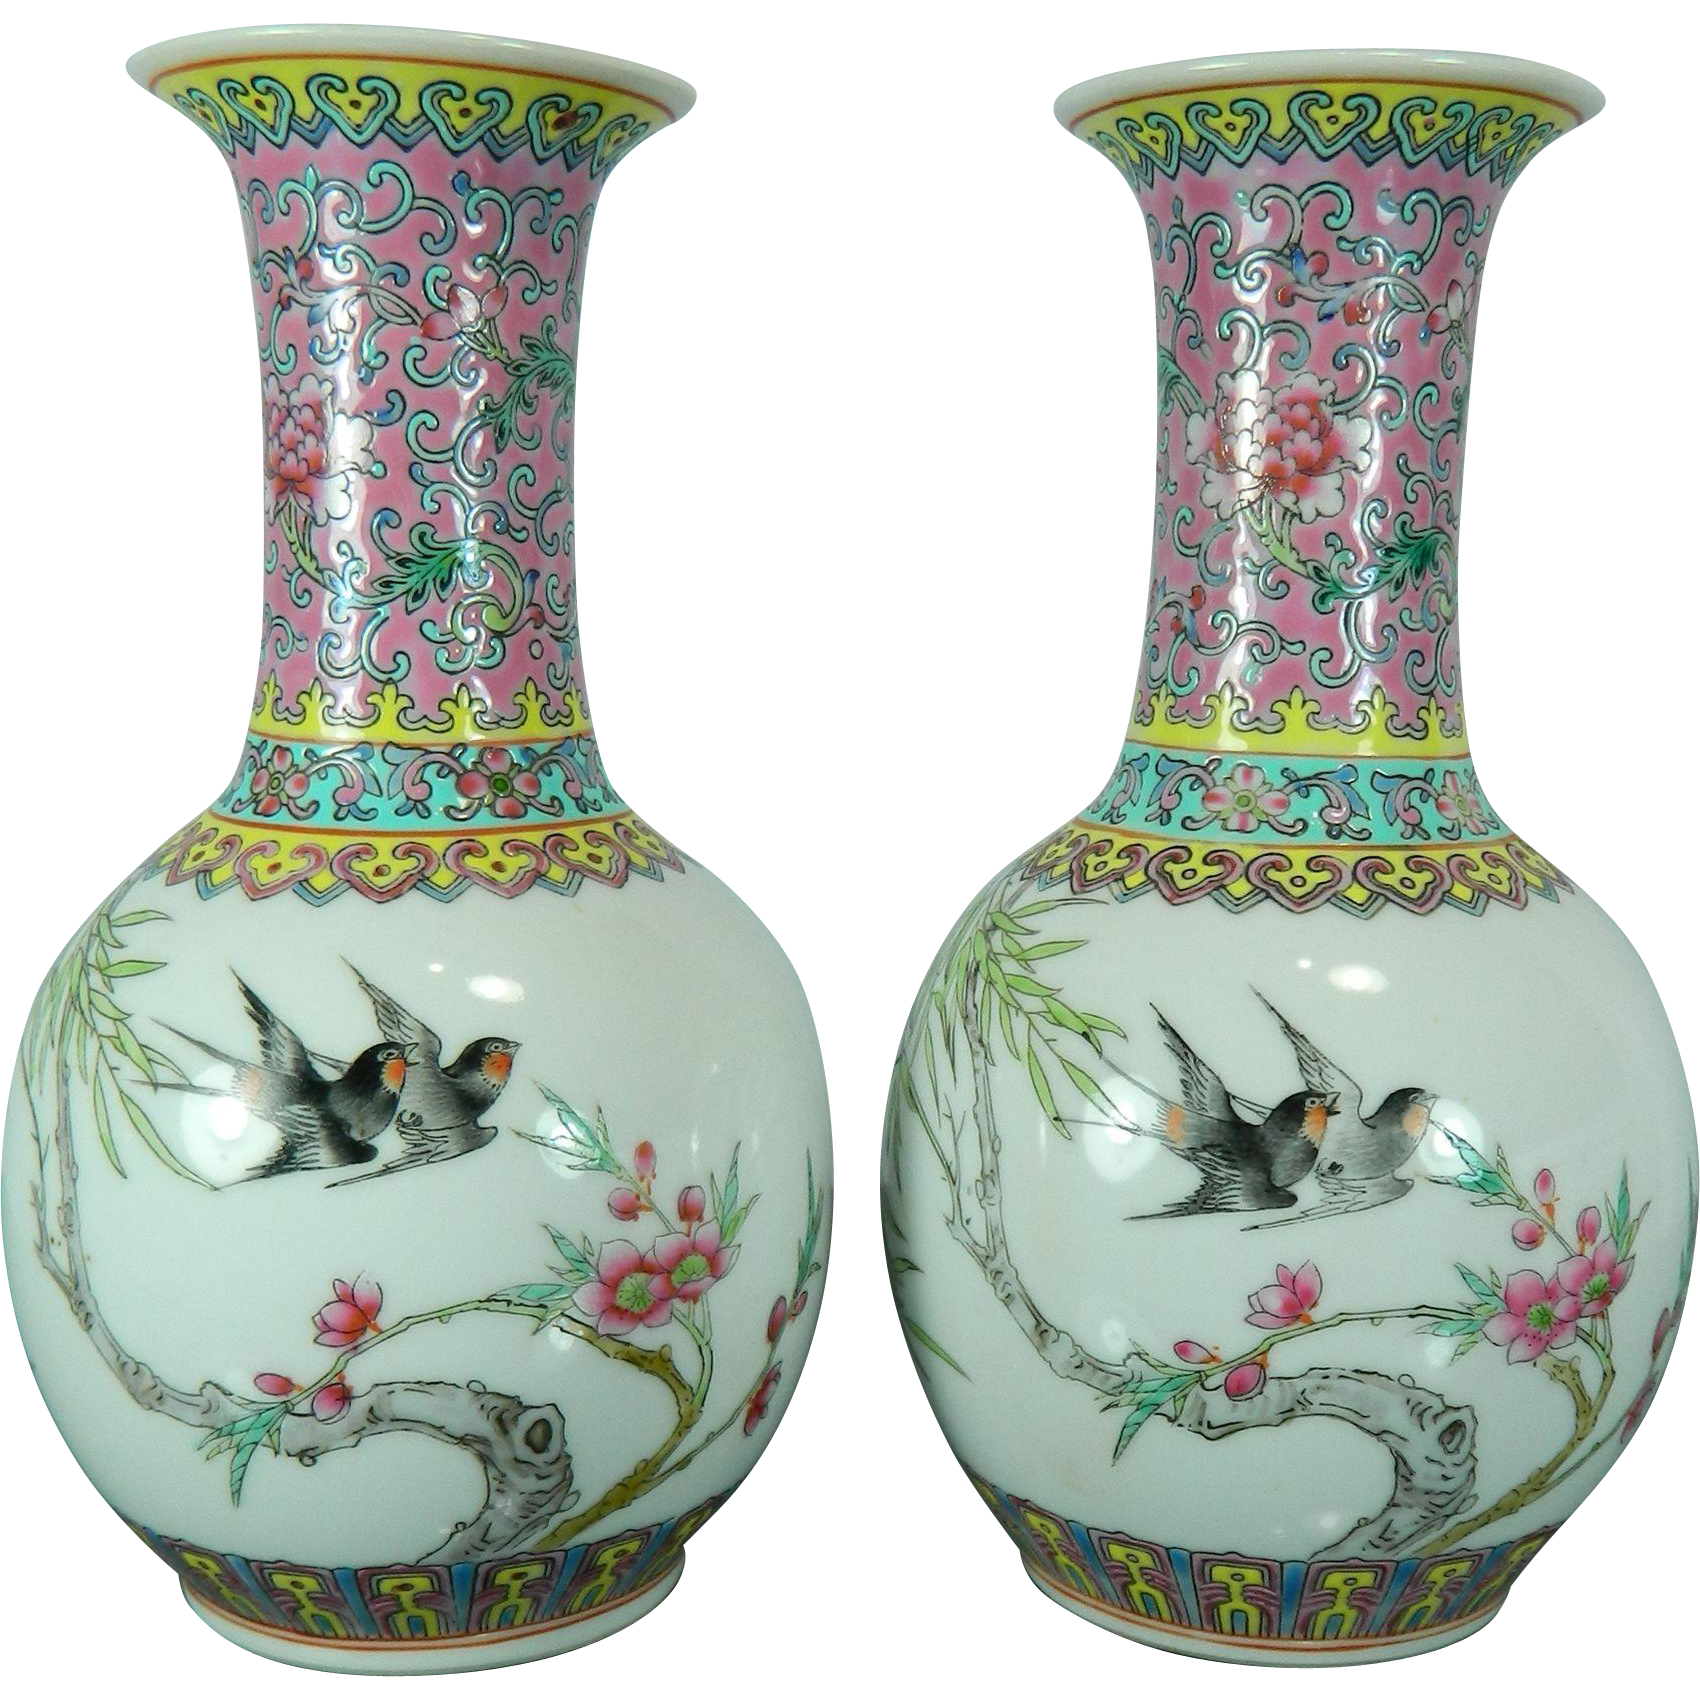 Vintage chinese pair of hand painted porcelain flower vases vintage chinese pair of hand painted porcelain flower vases china little shop of treasures ruby lane reviewsmspy